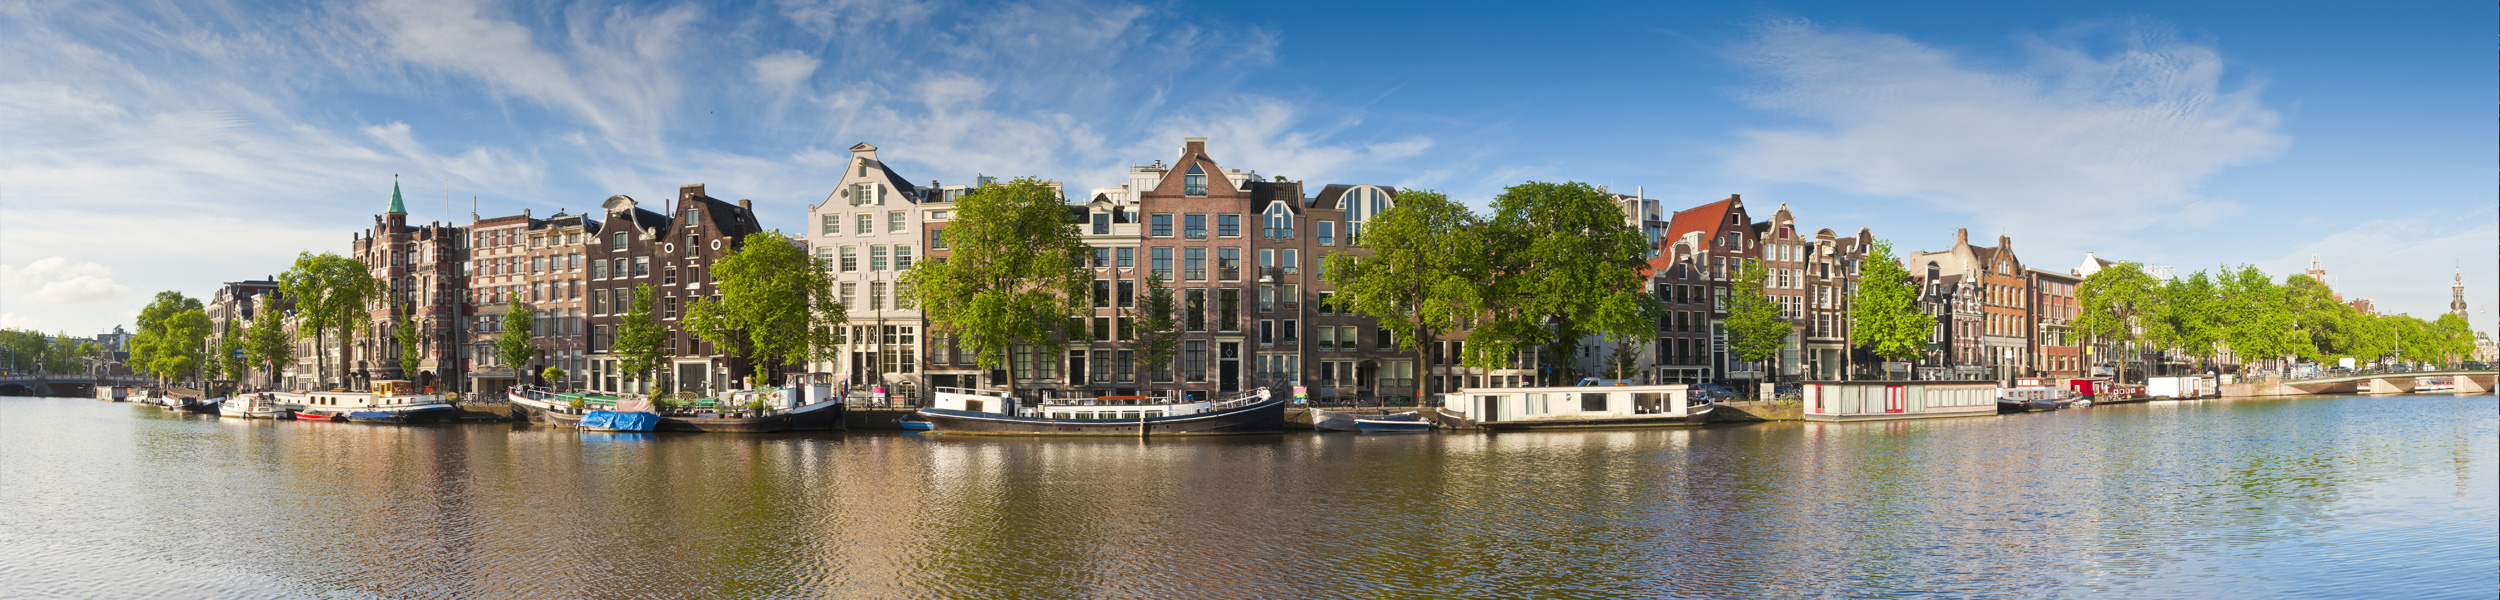 Android Engineer Amsterdam, the Netherlands